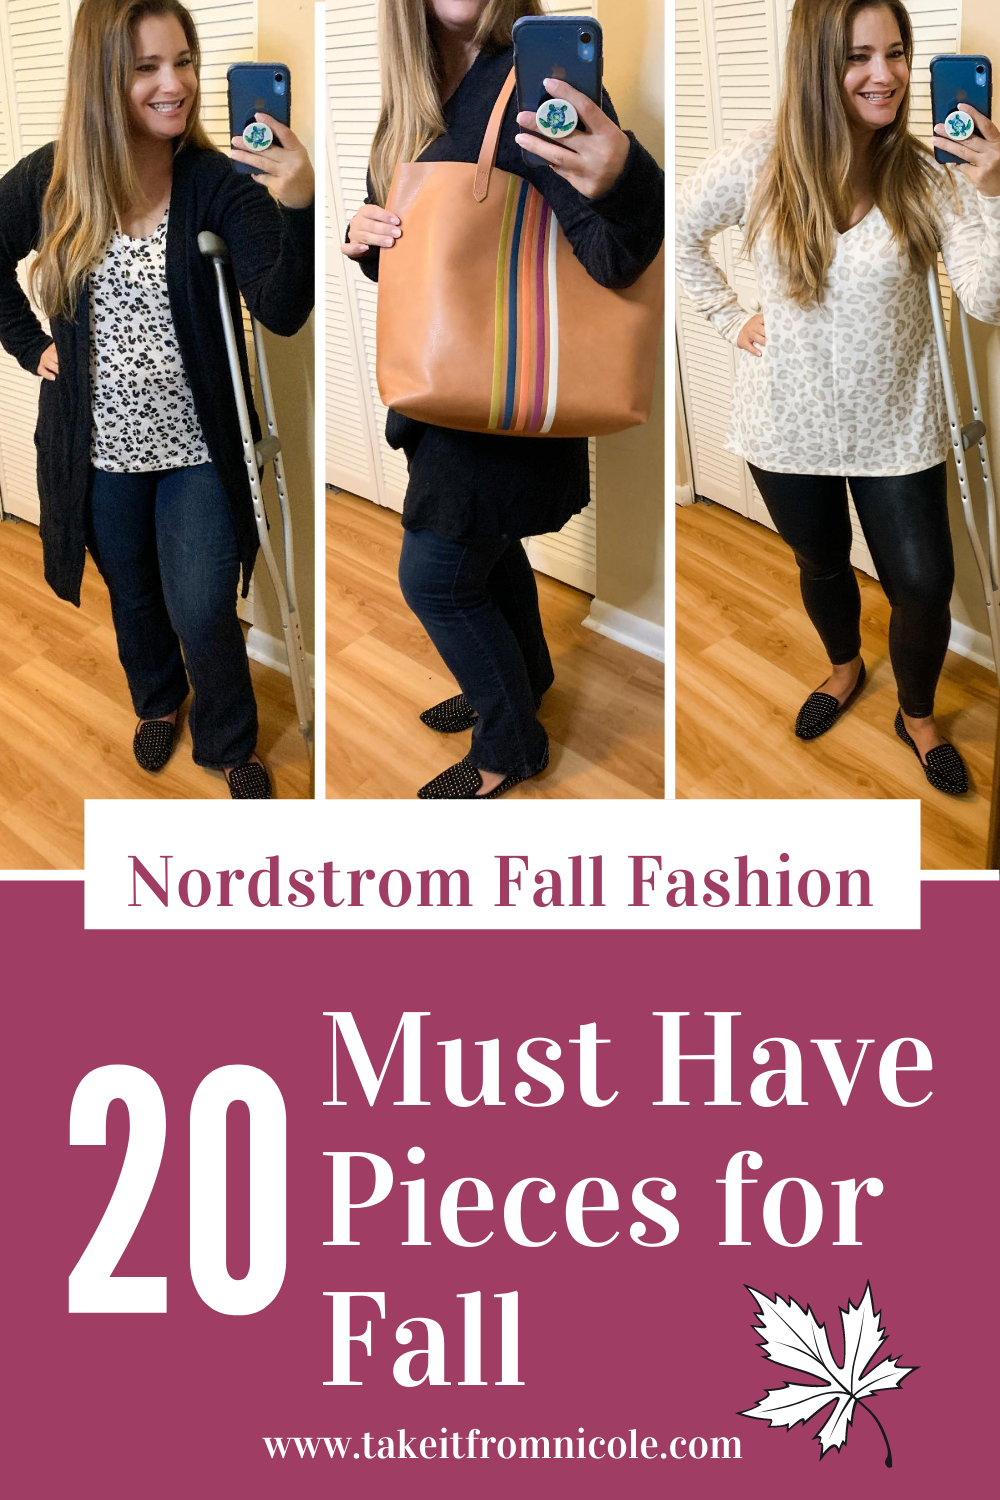 Tampa Curvy Midsize Mom Blogger highlights 20 must have fall fashion pieces you need from Nordstrom. Budget friendly, affordable classic style.  Sweaters, tees, cardigans, leggings, jeans, shoes, bags.